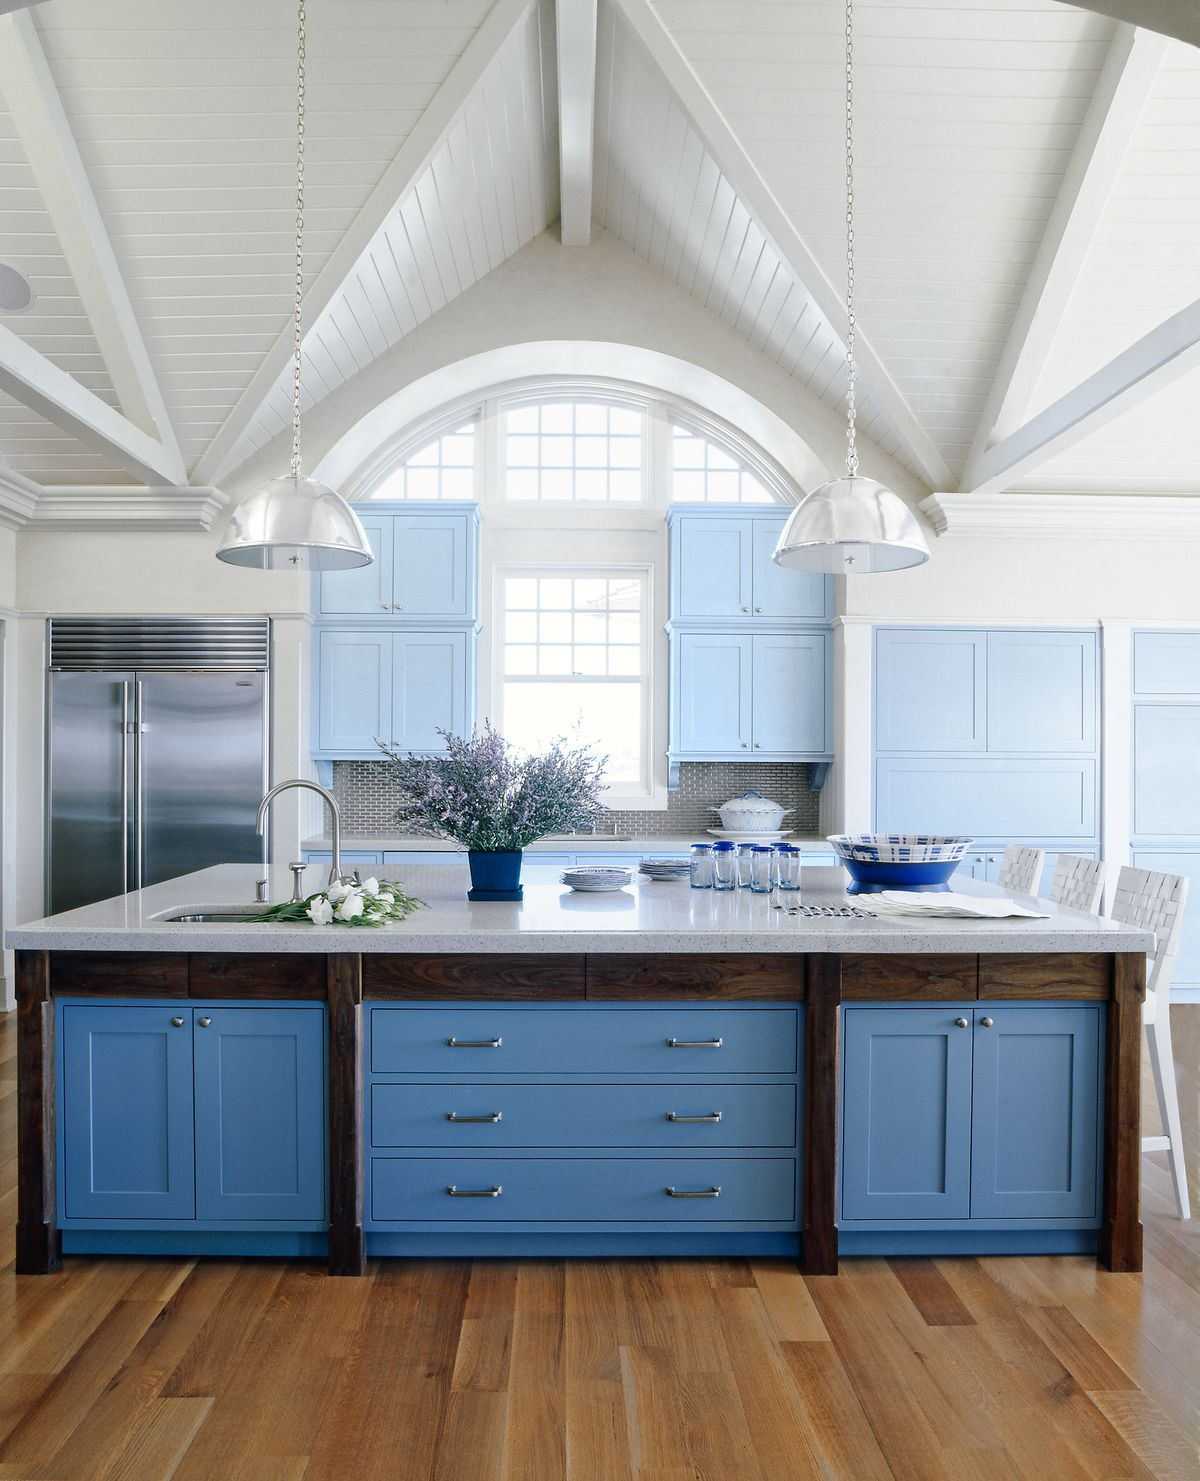 12 Kitchen Cabinet Color Ideas: Two-Tone Combinations ...